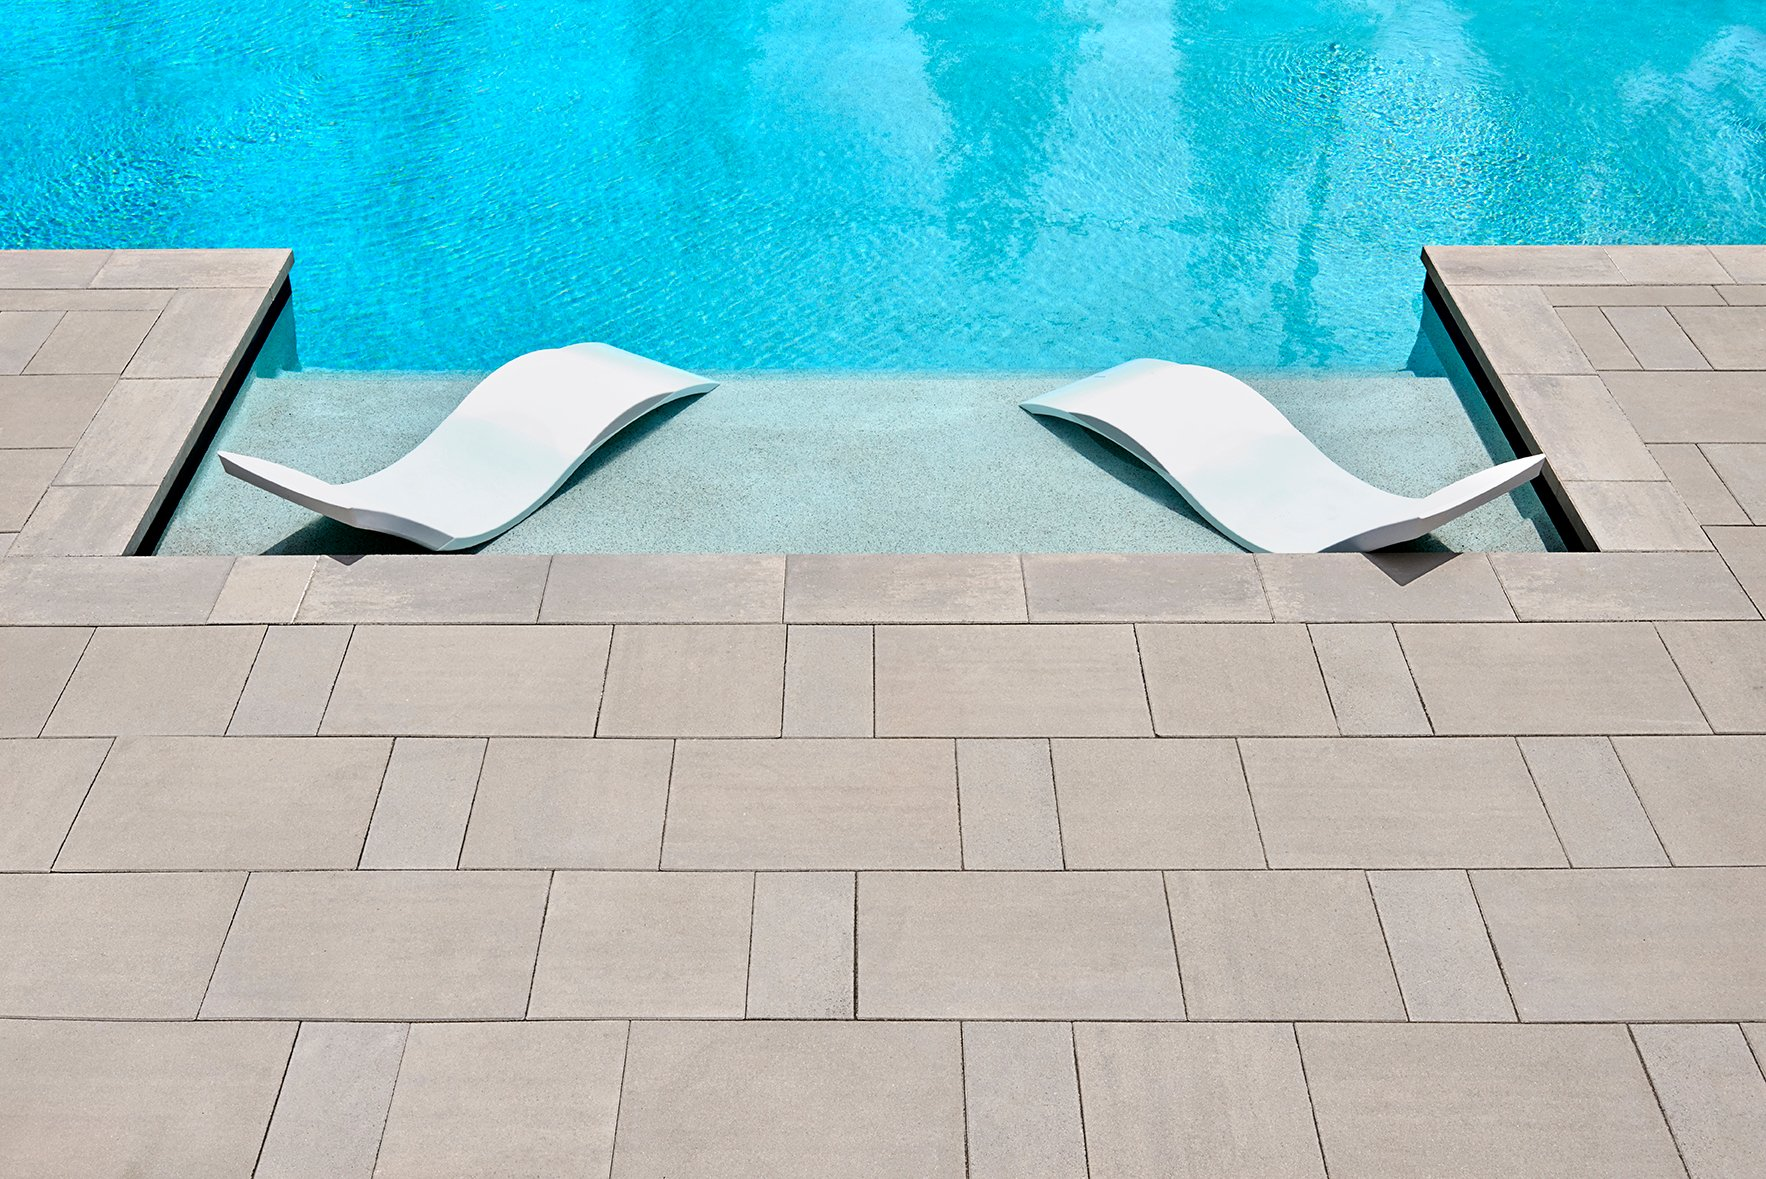 The Top 6 Swimming Pool Trends That Are Shaping The Industry